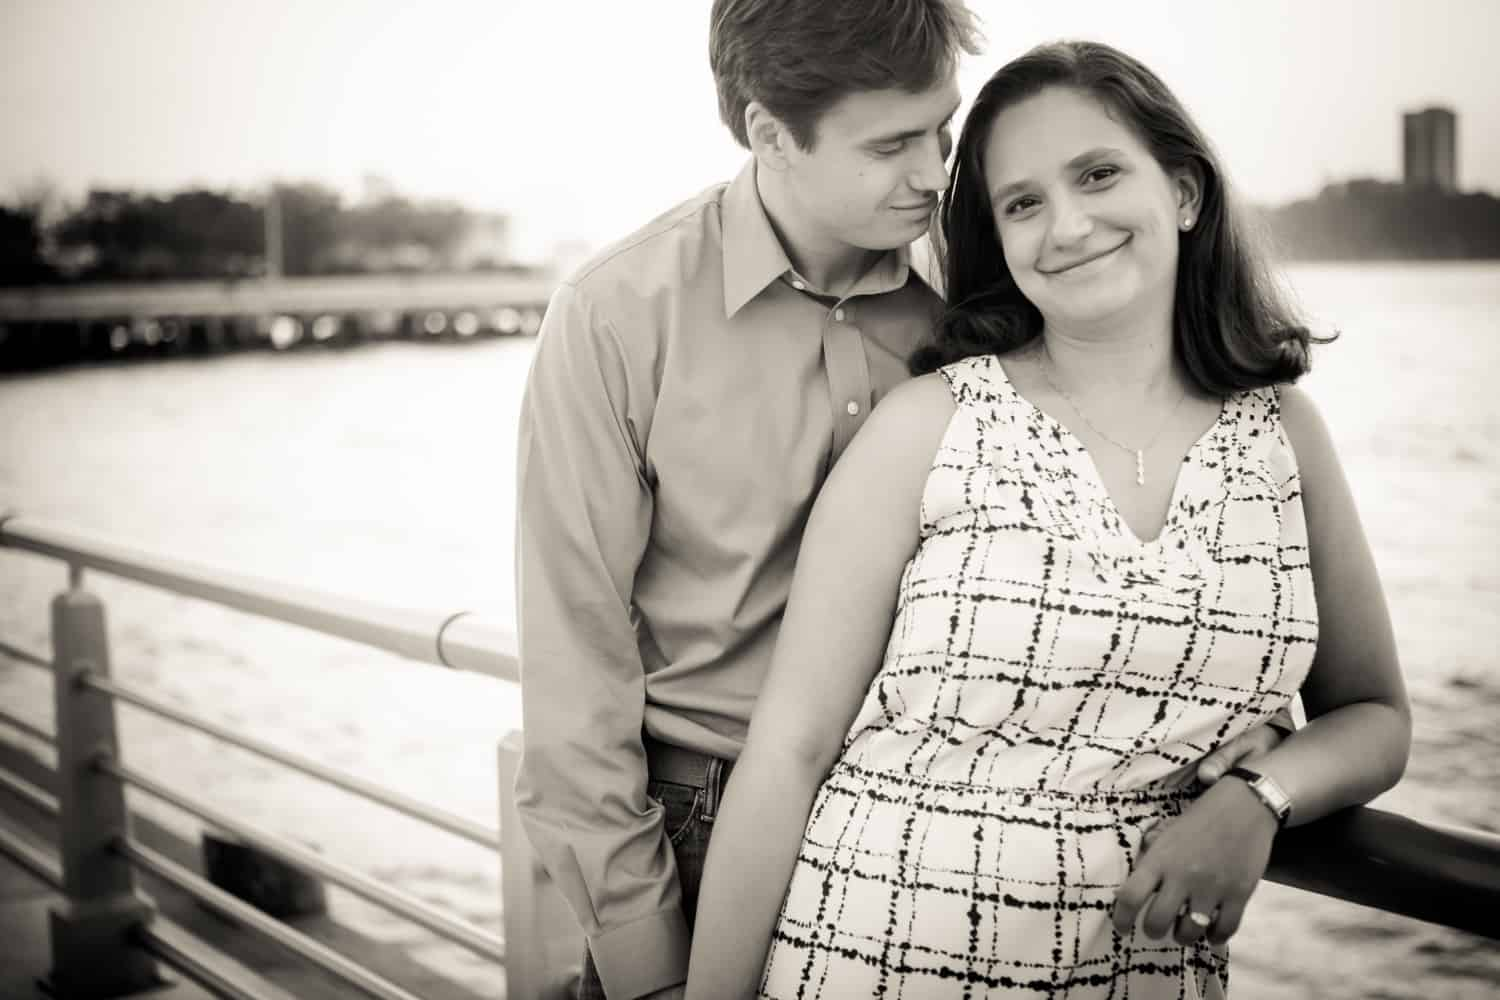 Black and white photo of engaged couple against railing at sunset with Hudson River waterfront in background